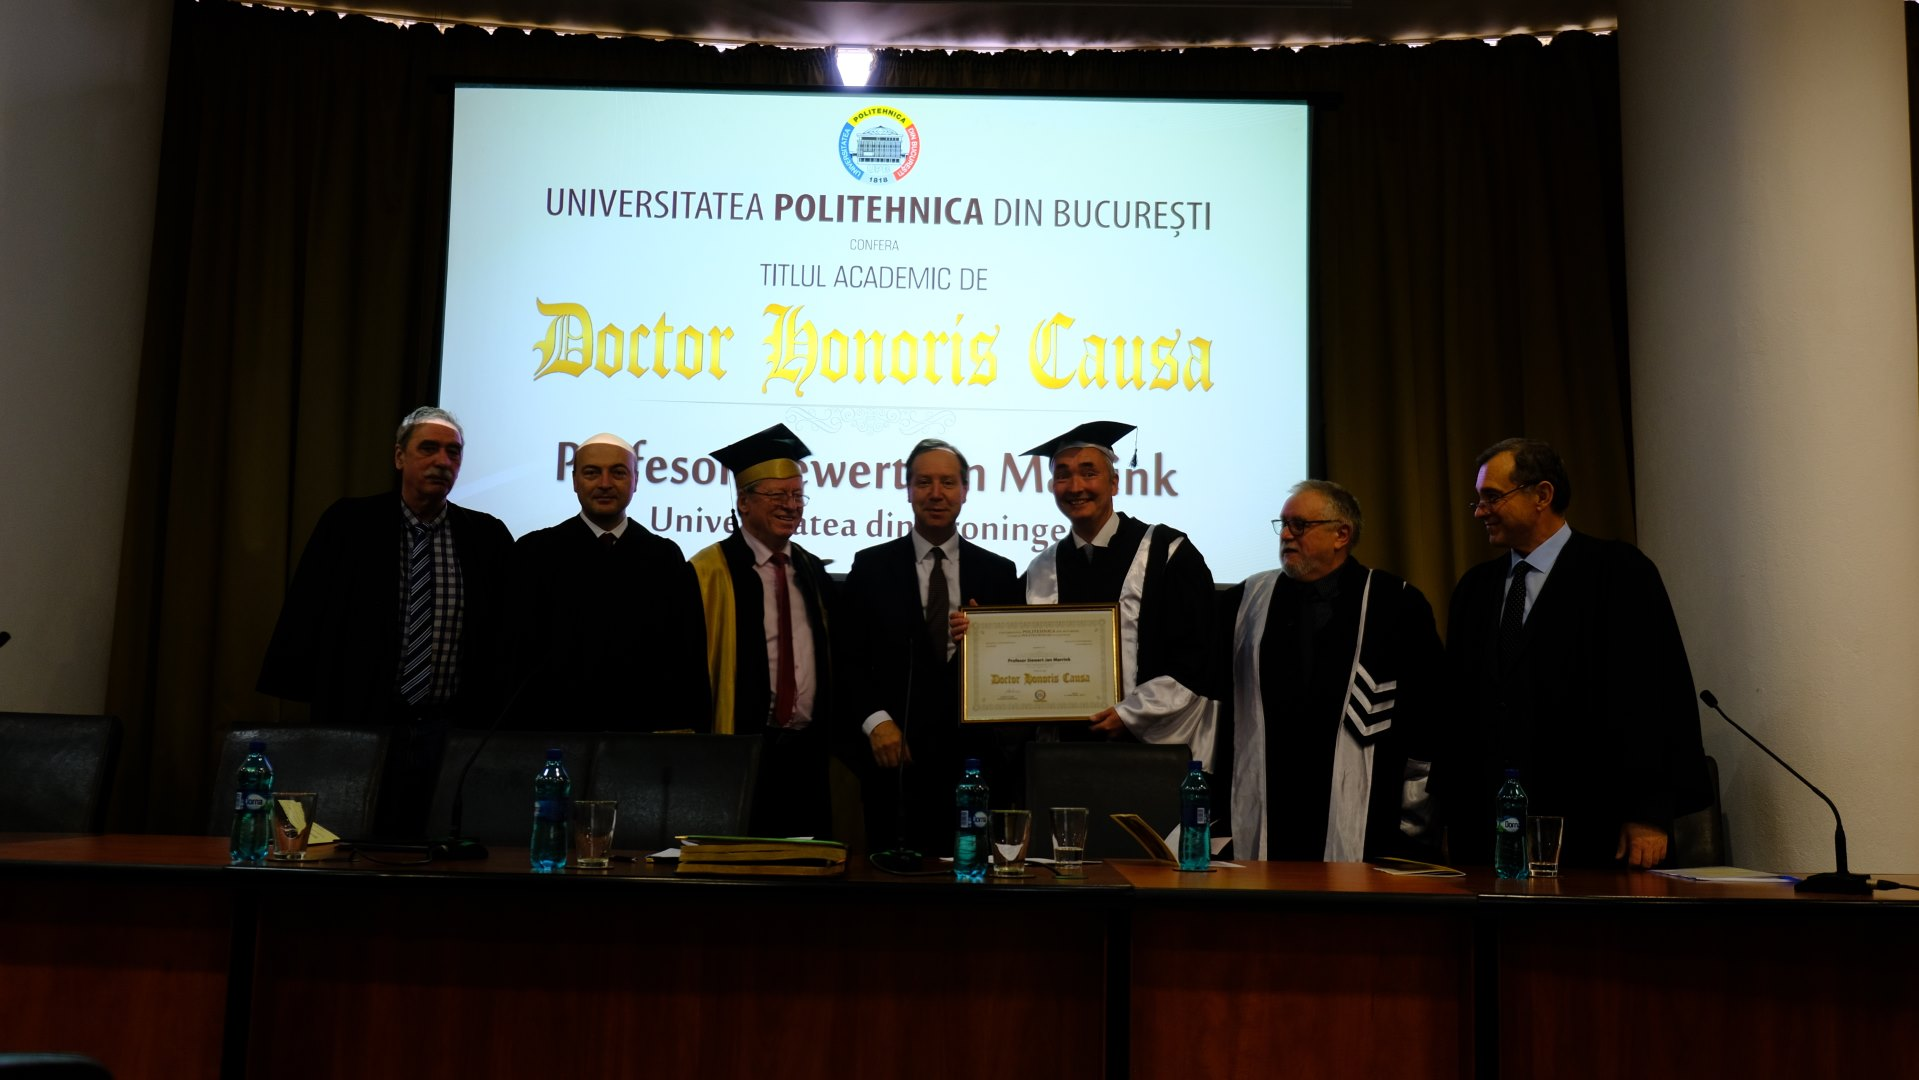 DOCTOR-HONORIS-CAUSA.jpg